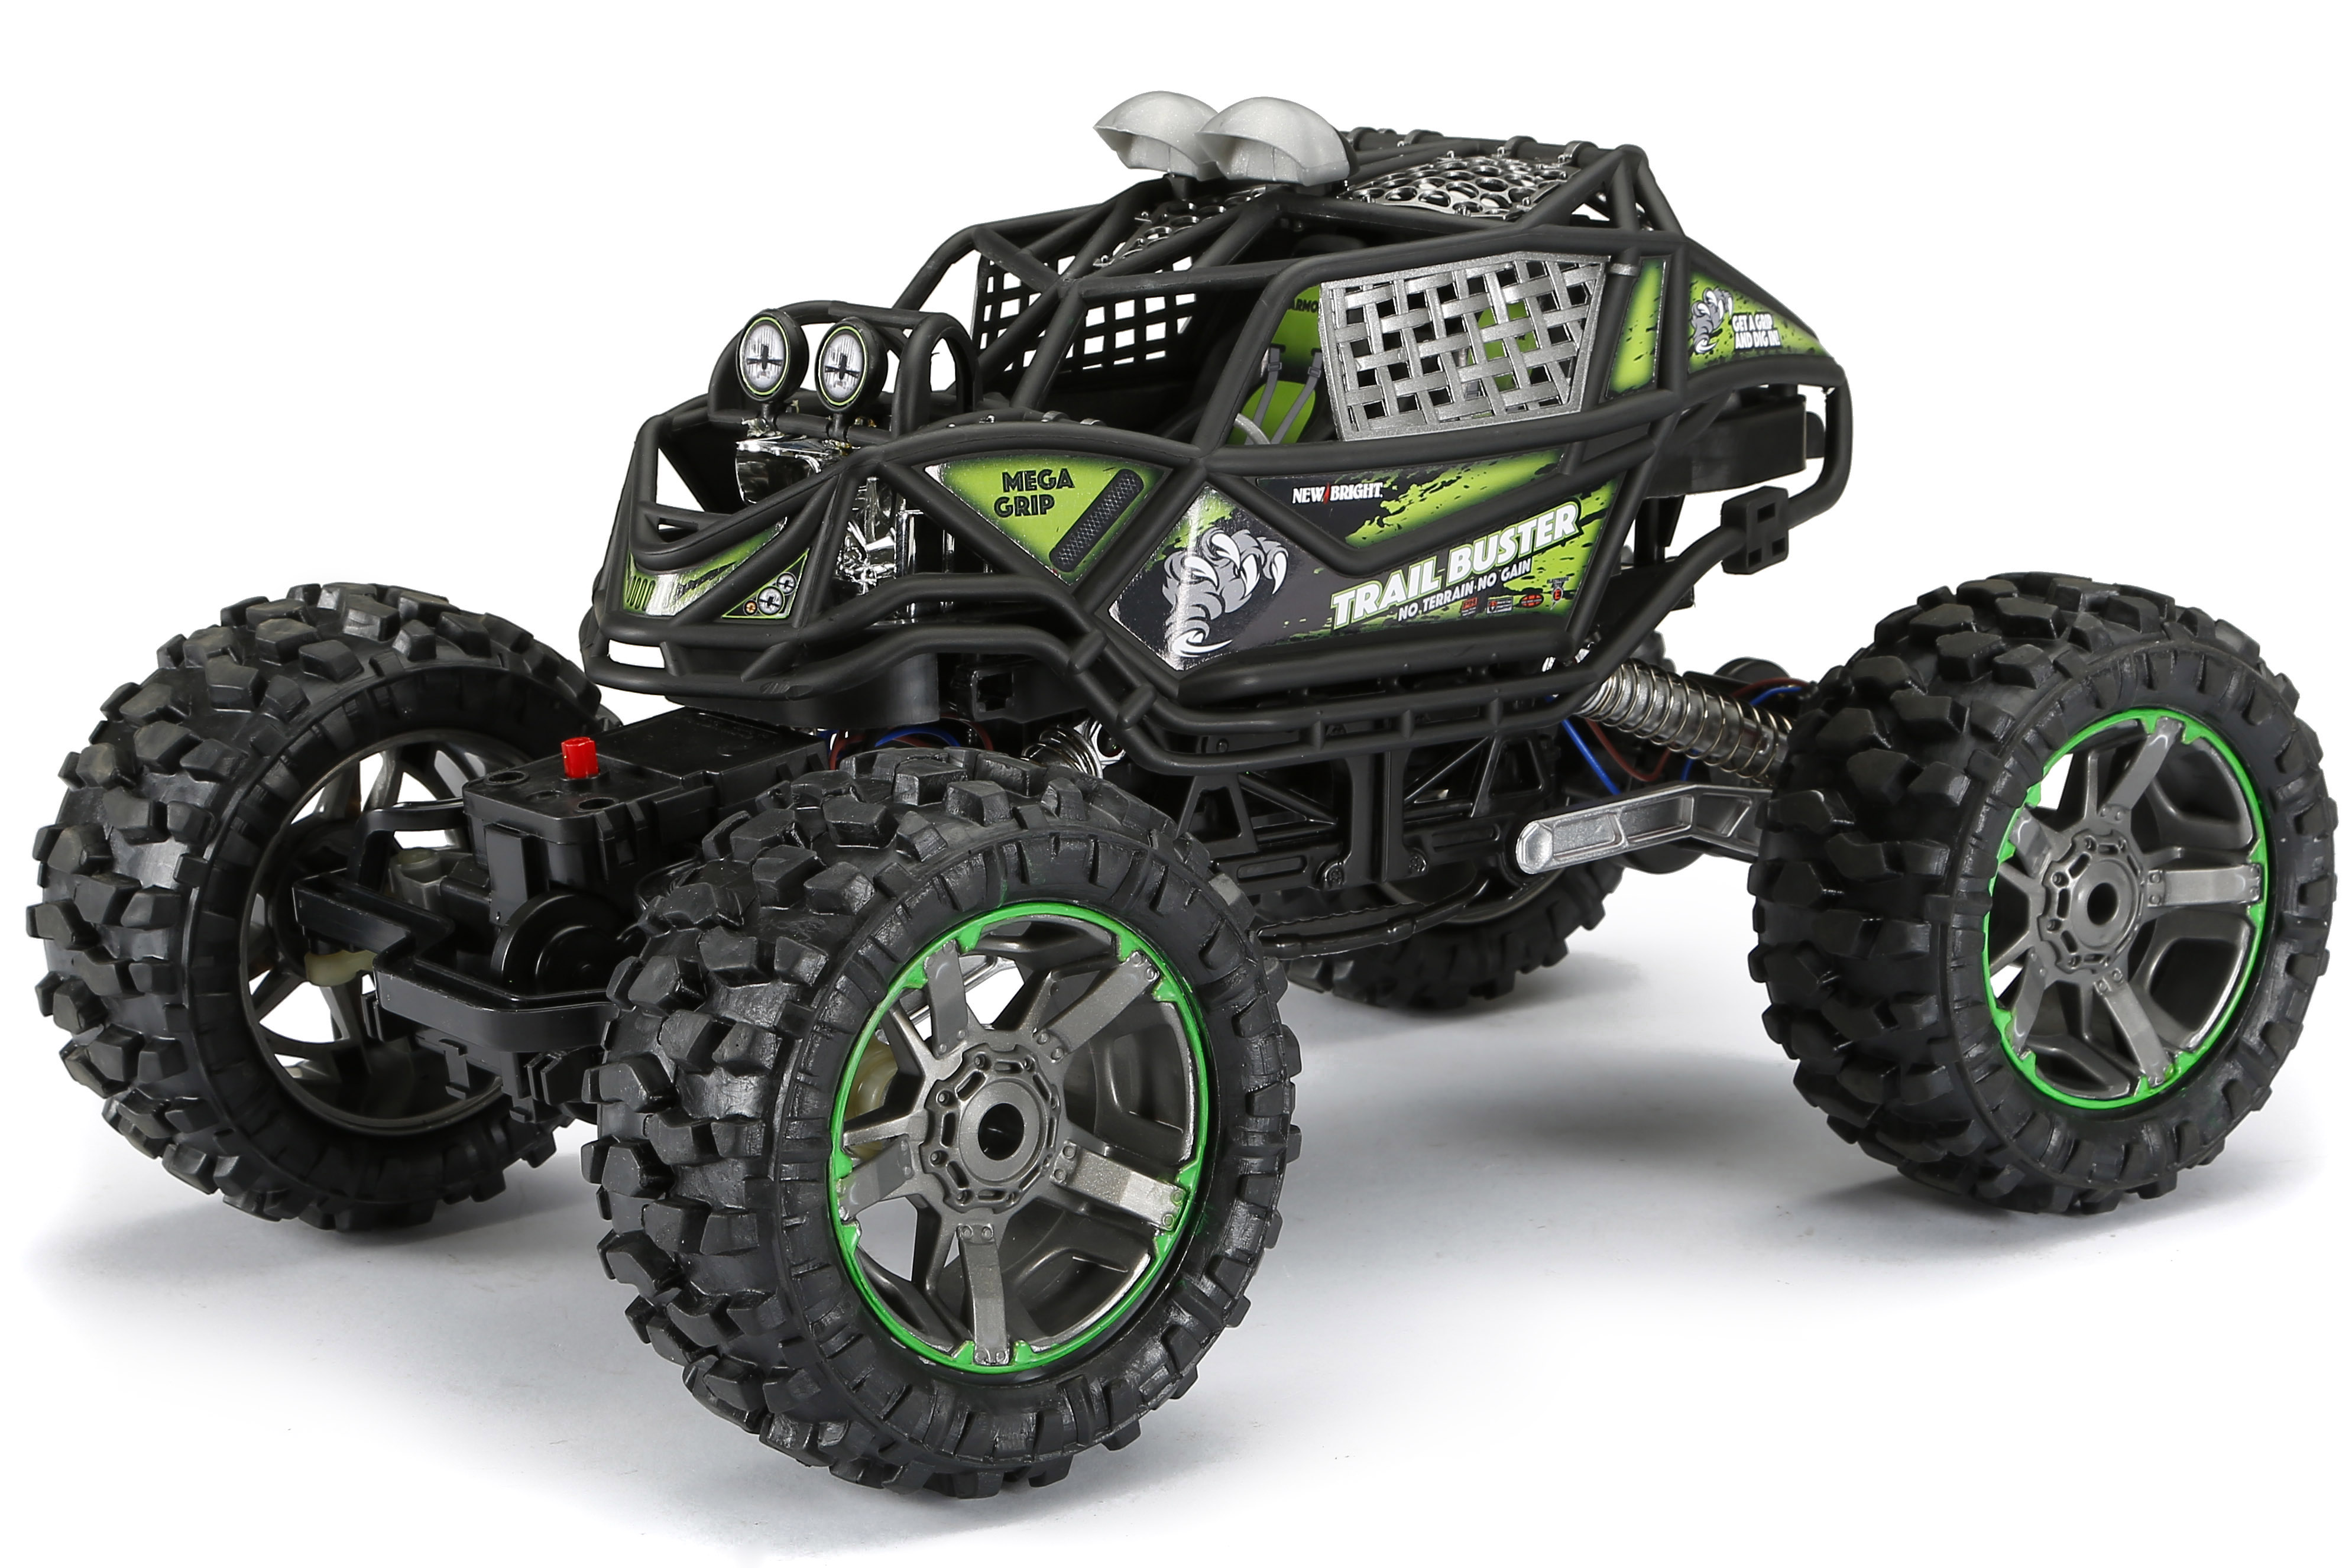 New Bright RC 1:10 Scale 4x4 Radio Control Trail Buster by New Bright Industrial Co., Ltd.